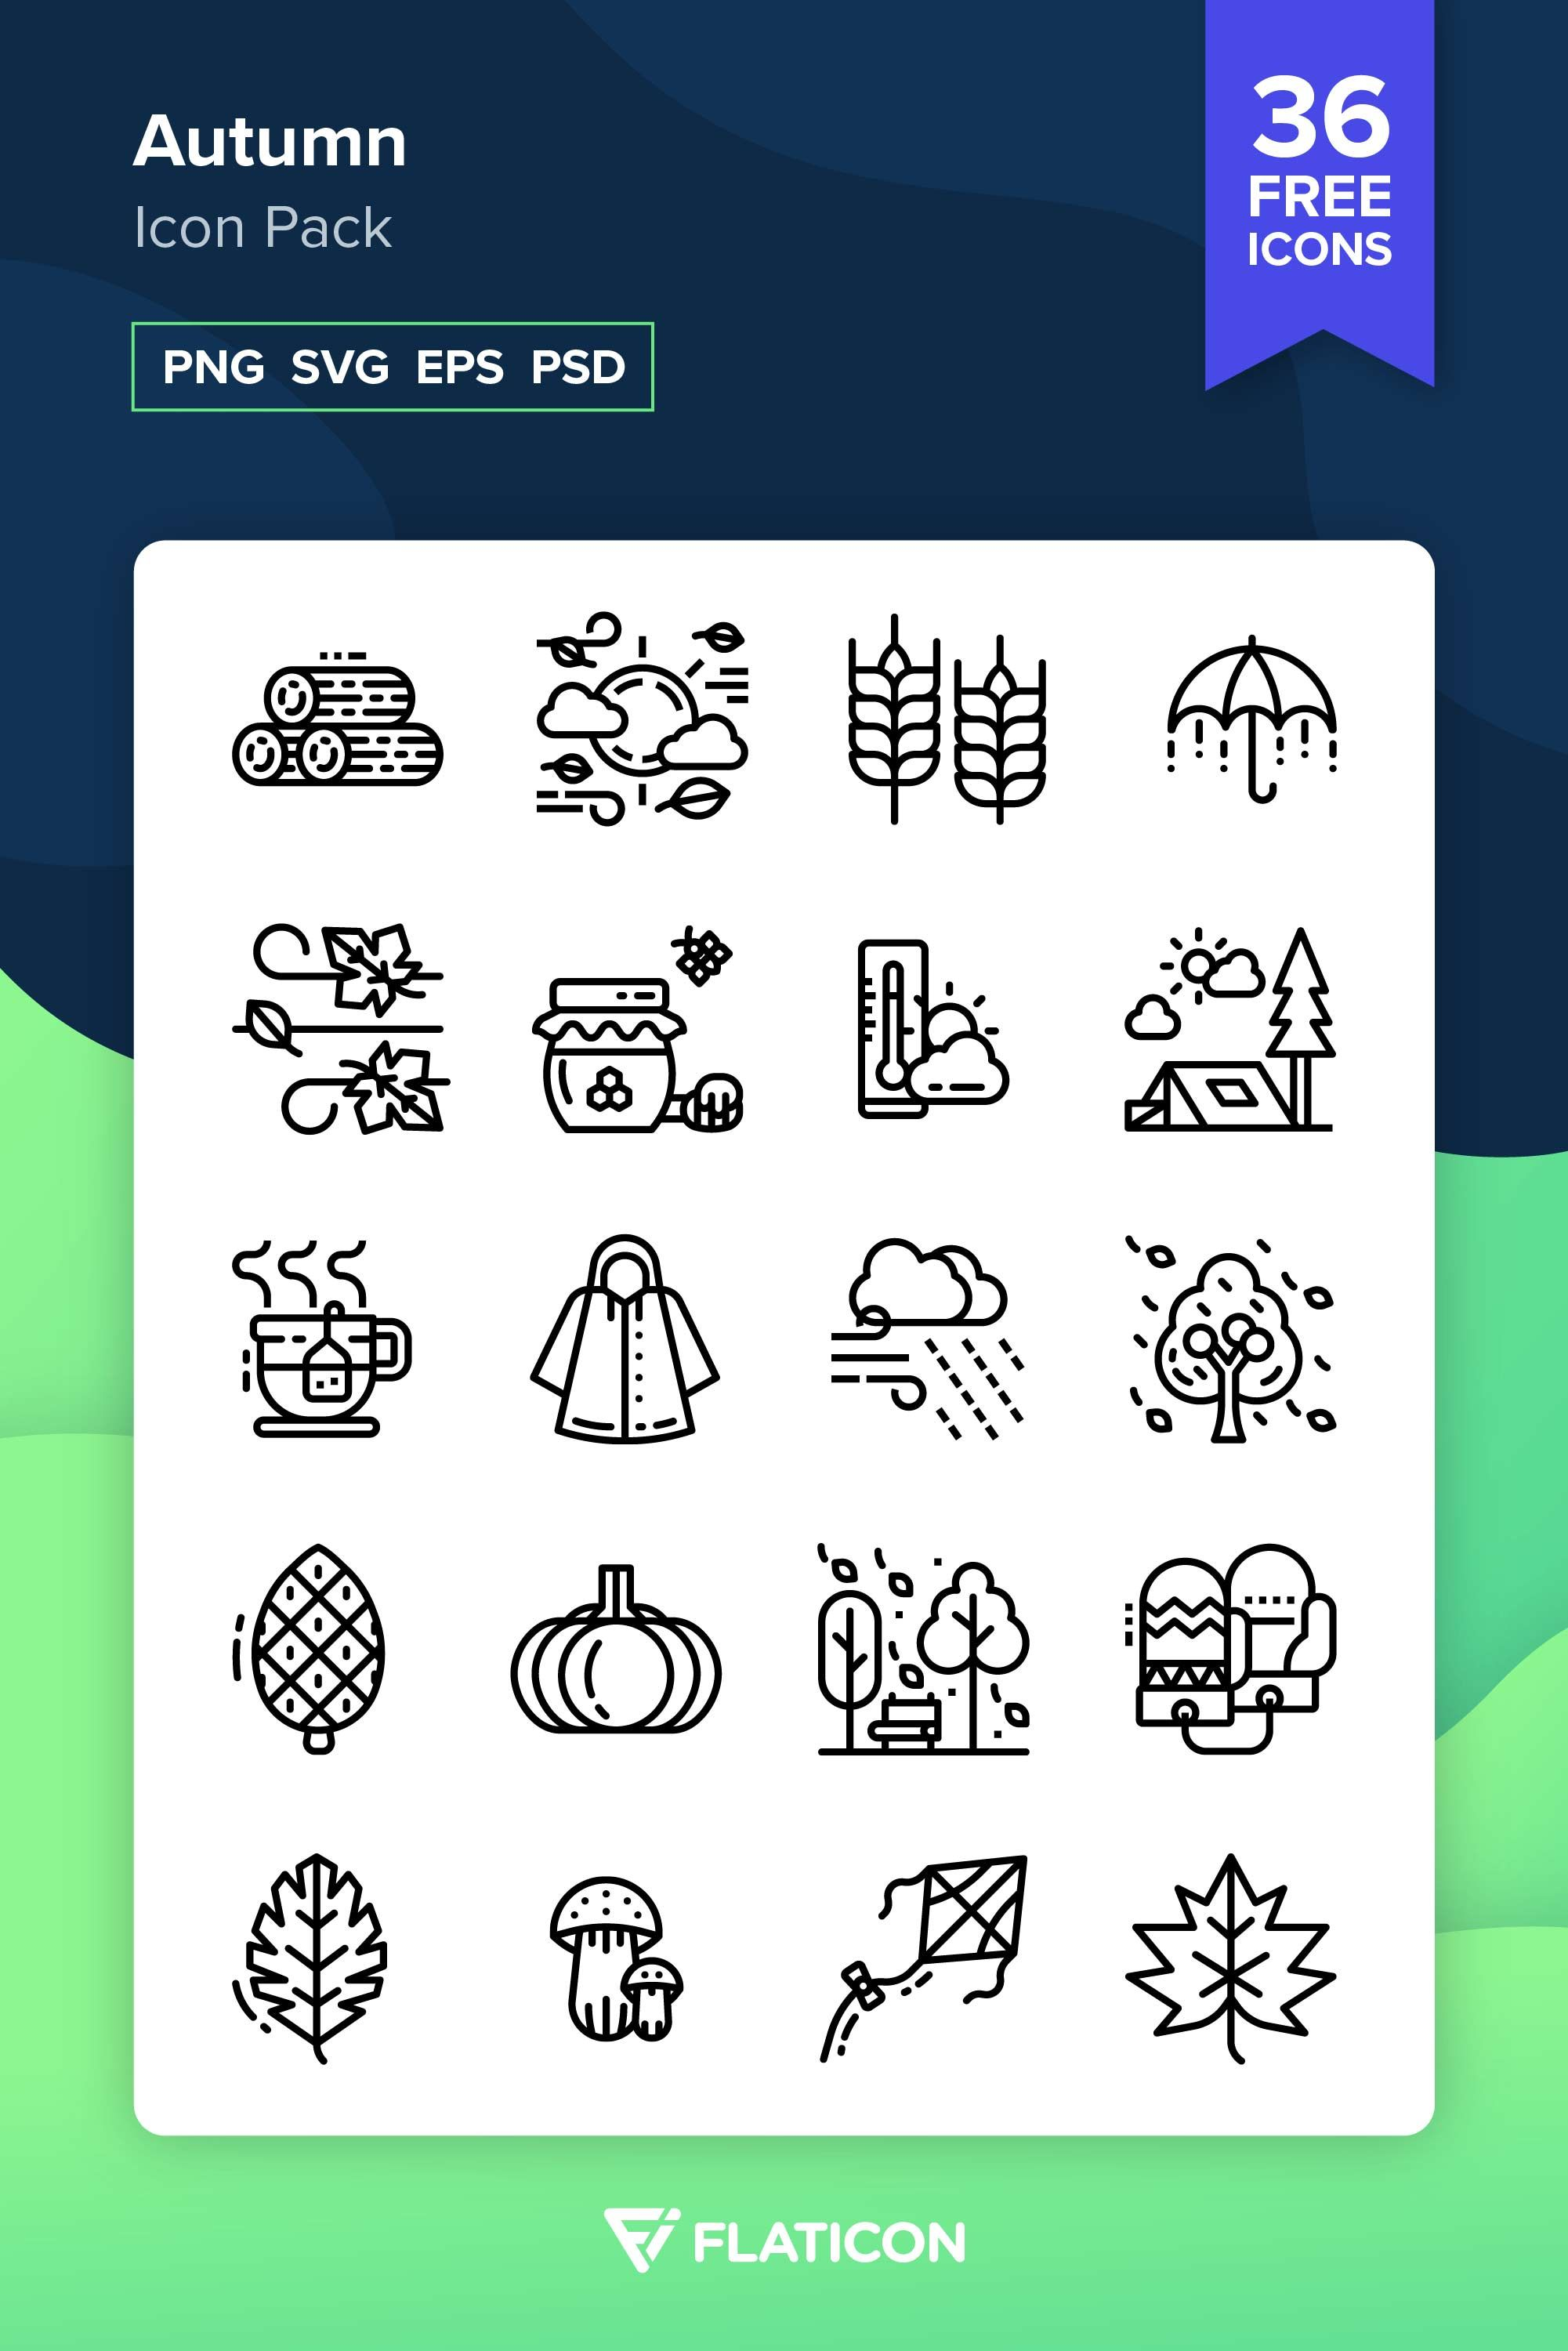 36 free vector icons of Autumn designed by photo3idea